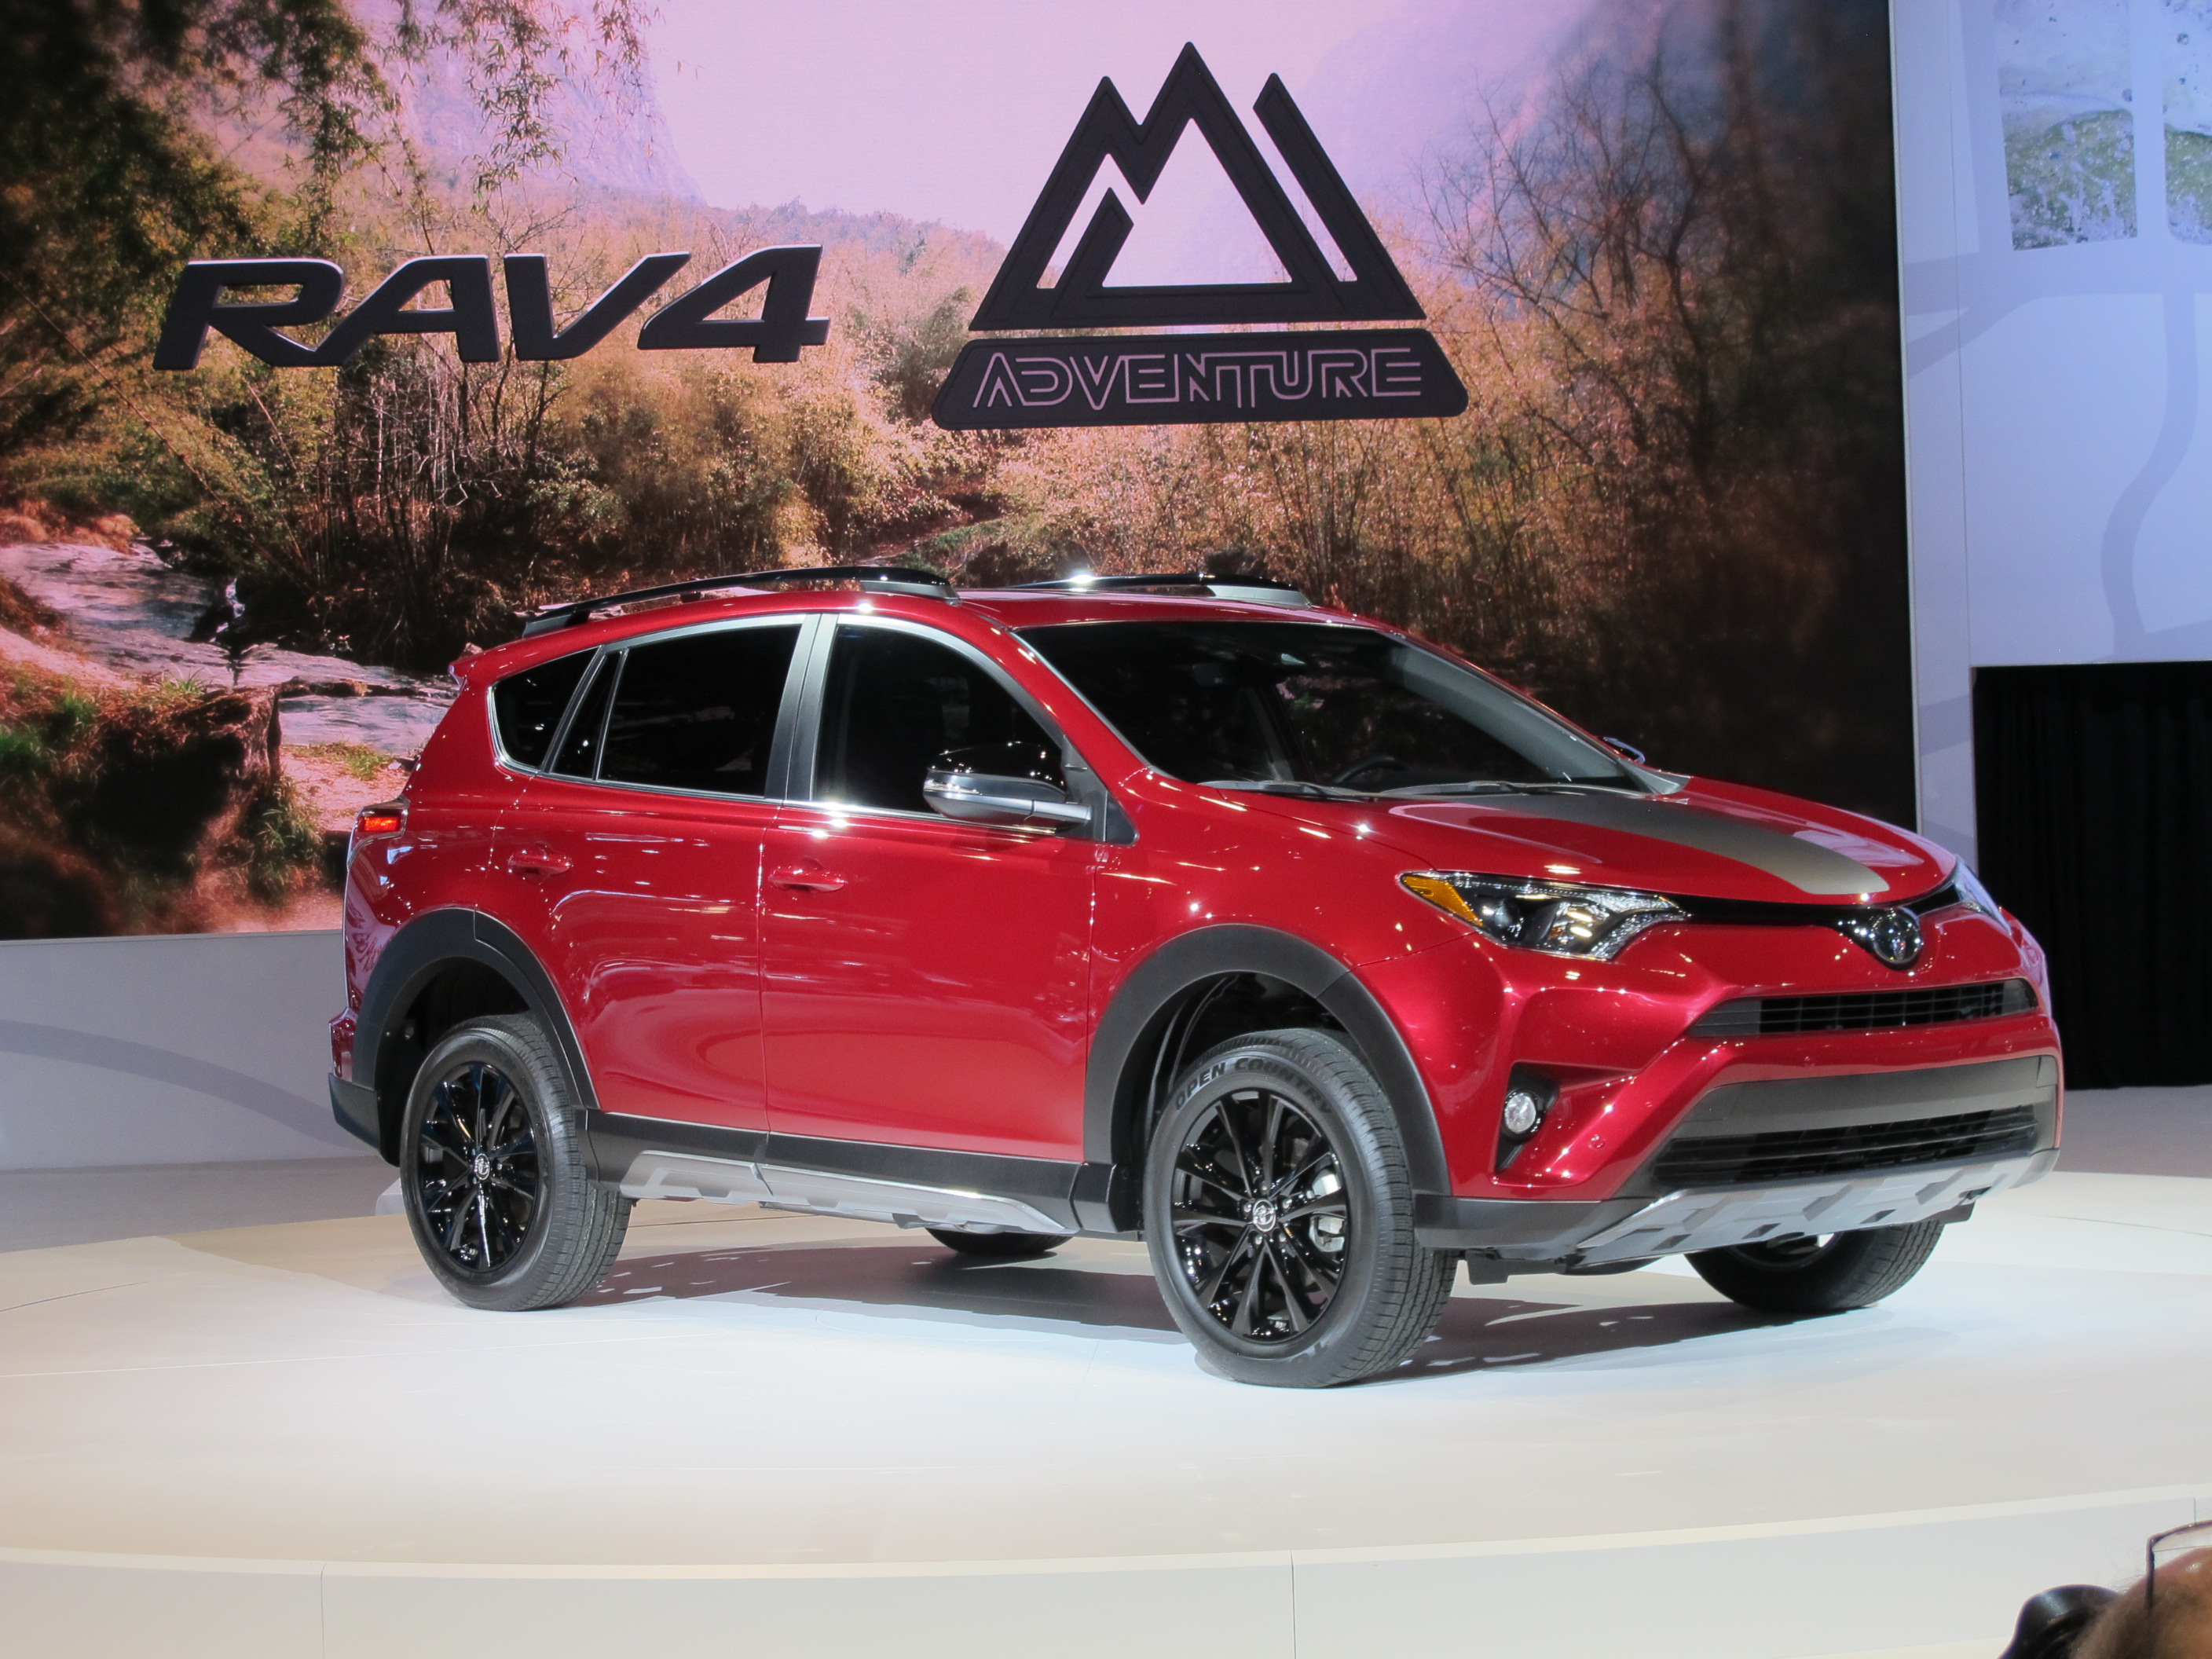 2018 toyota rav4 preview car news newslocker. Black Bedroom Furniture Sets. Home Design Ideas